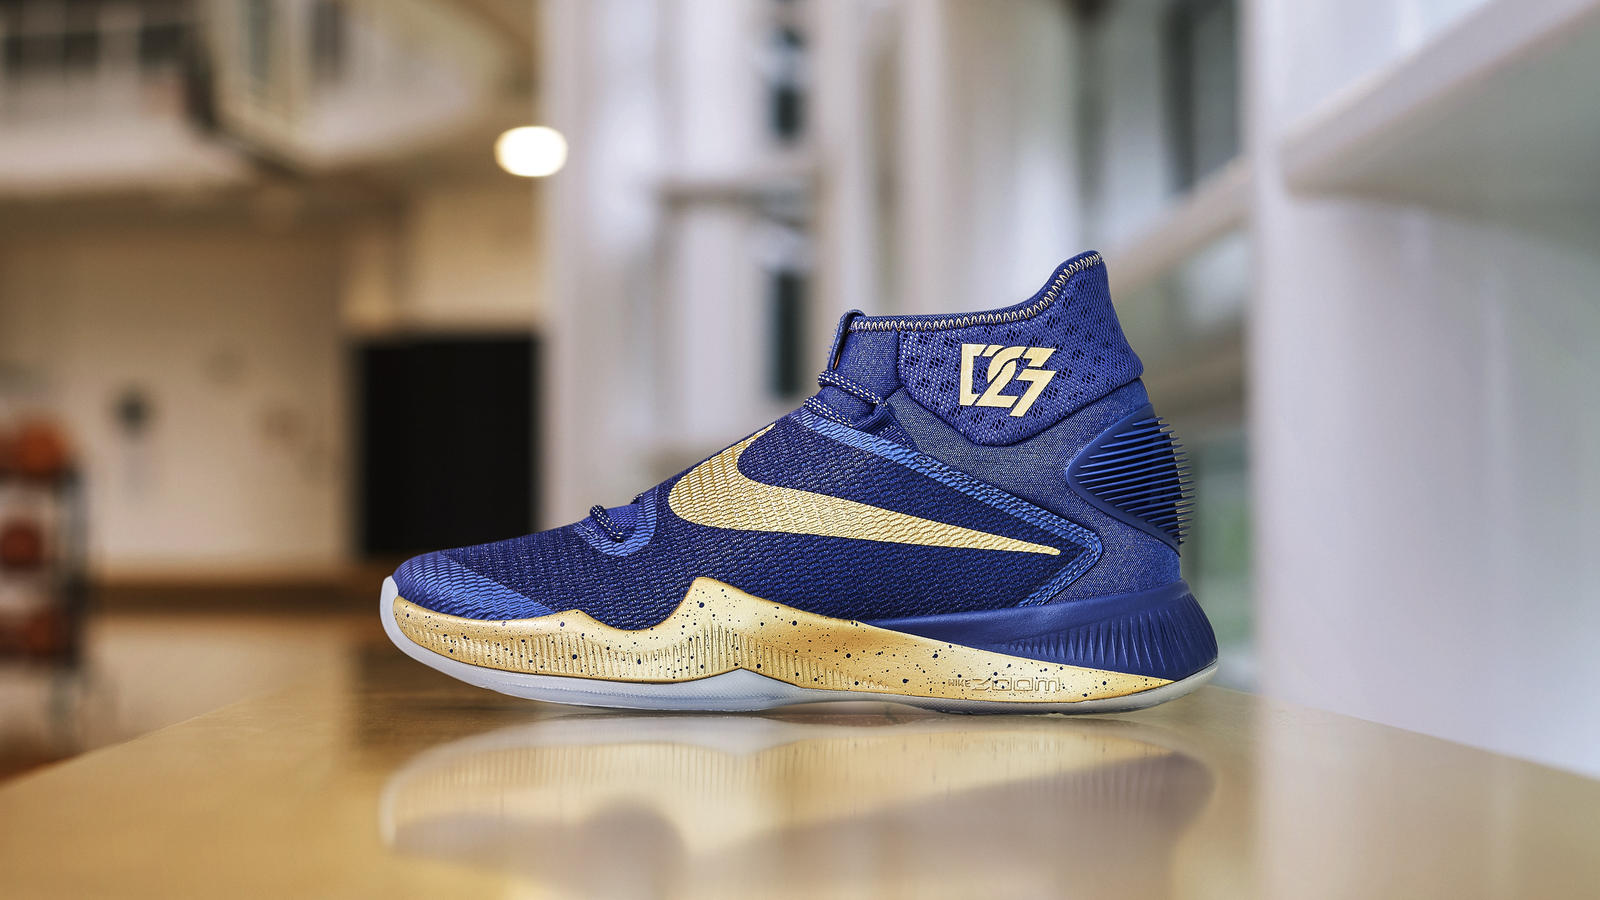 Check Out Draymond Green's Game 2 PE of the Nike HyperRev 2016-3